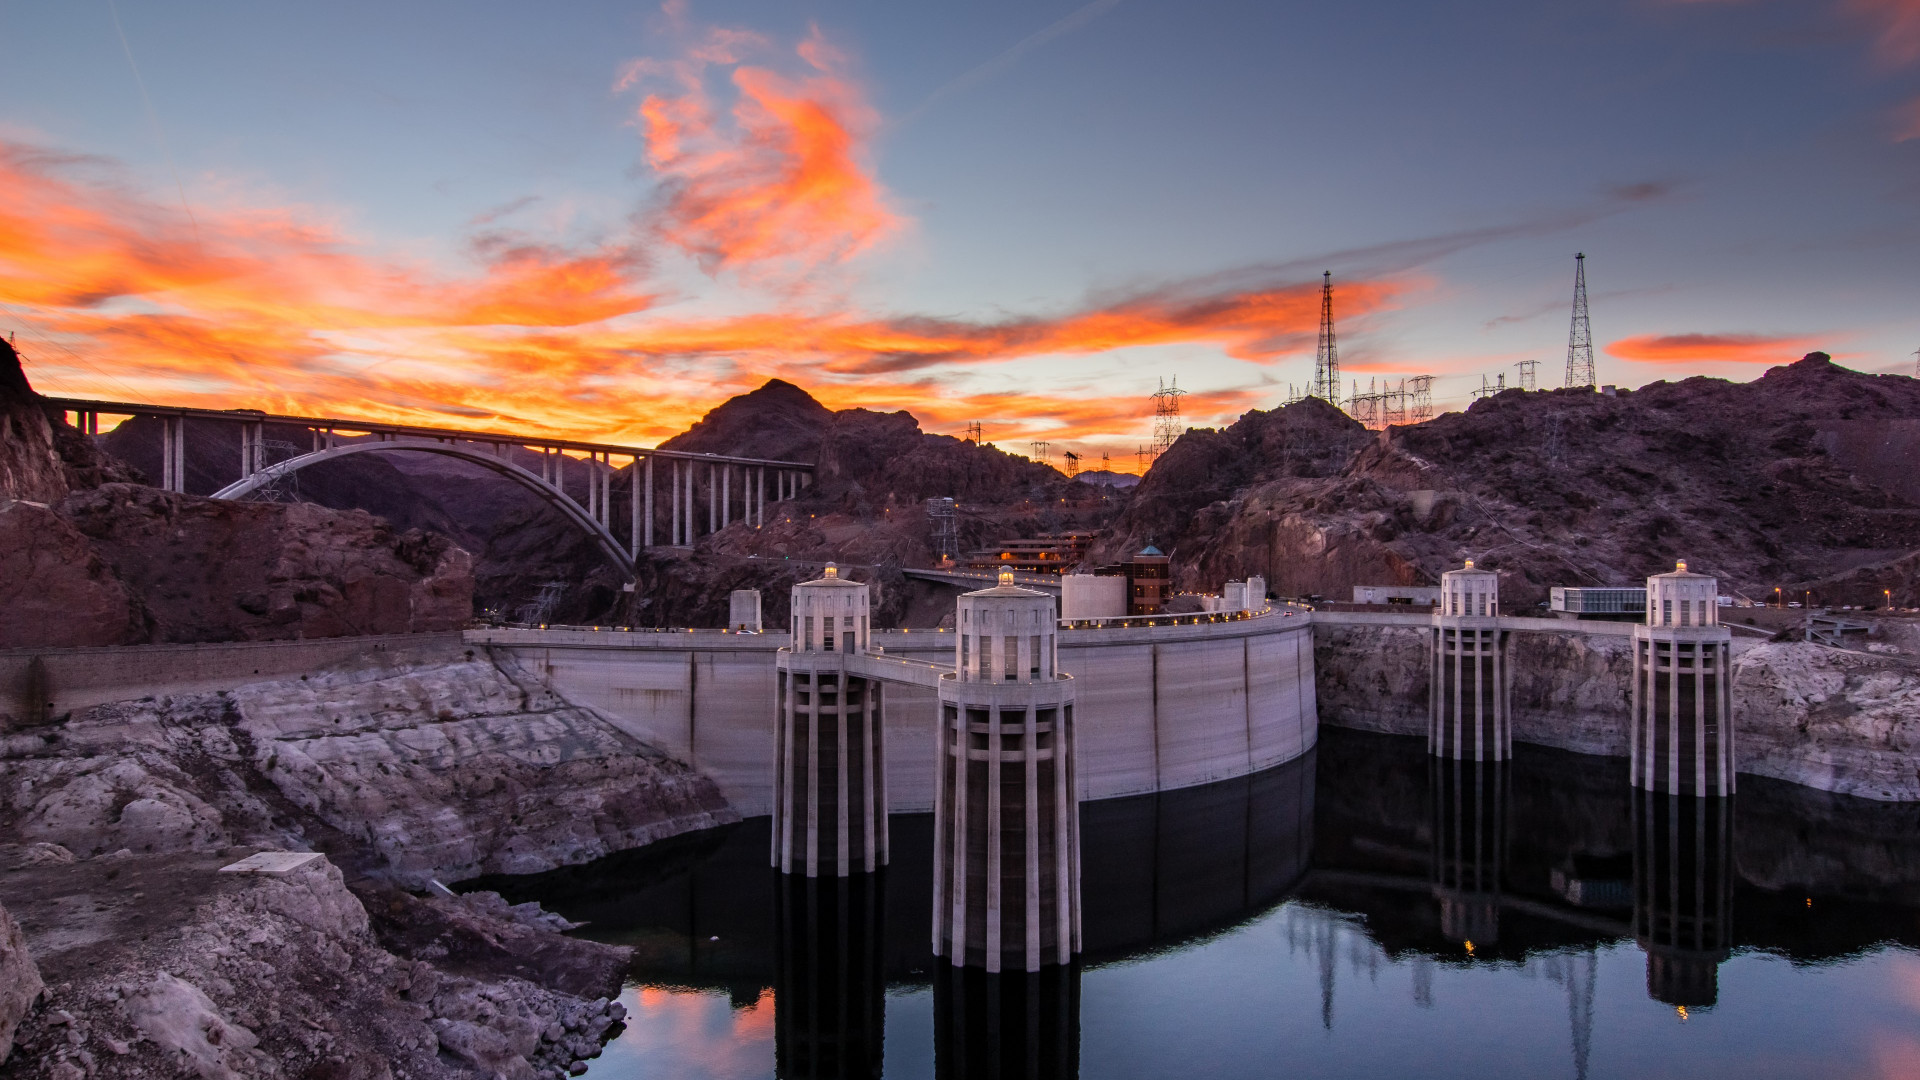 Hoover Dam at sunset wallpaper 1920x1080